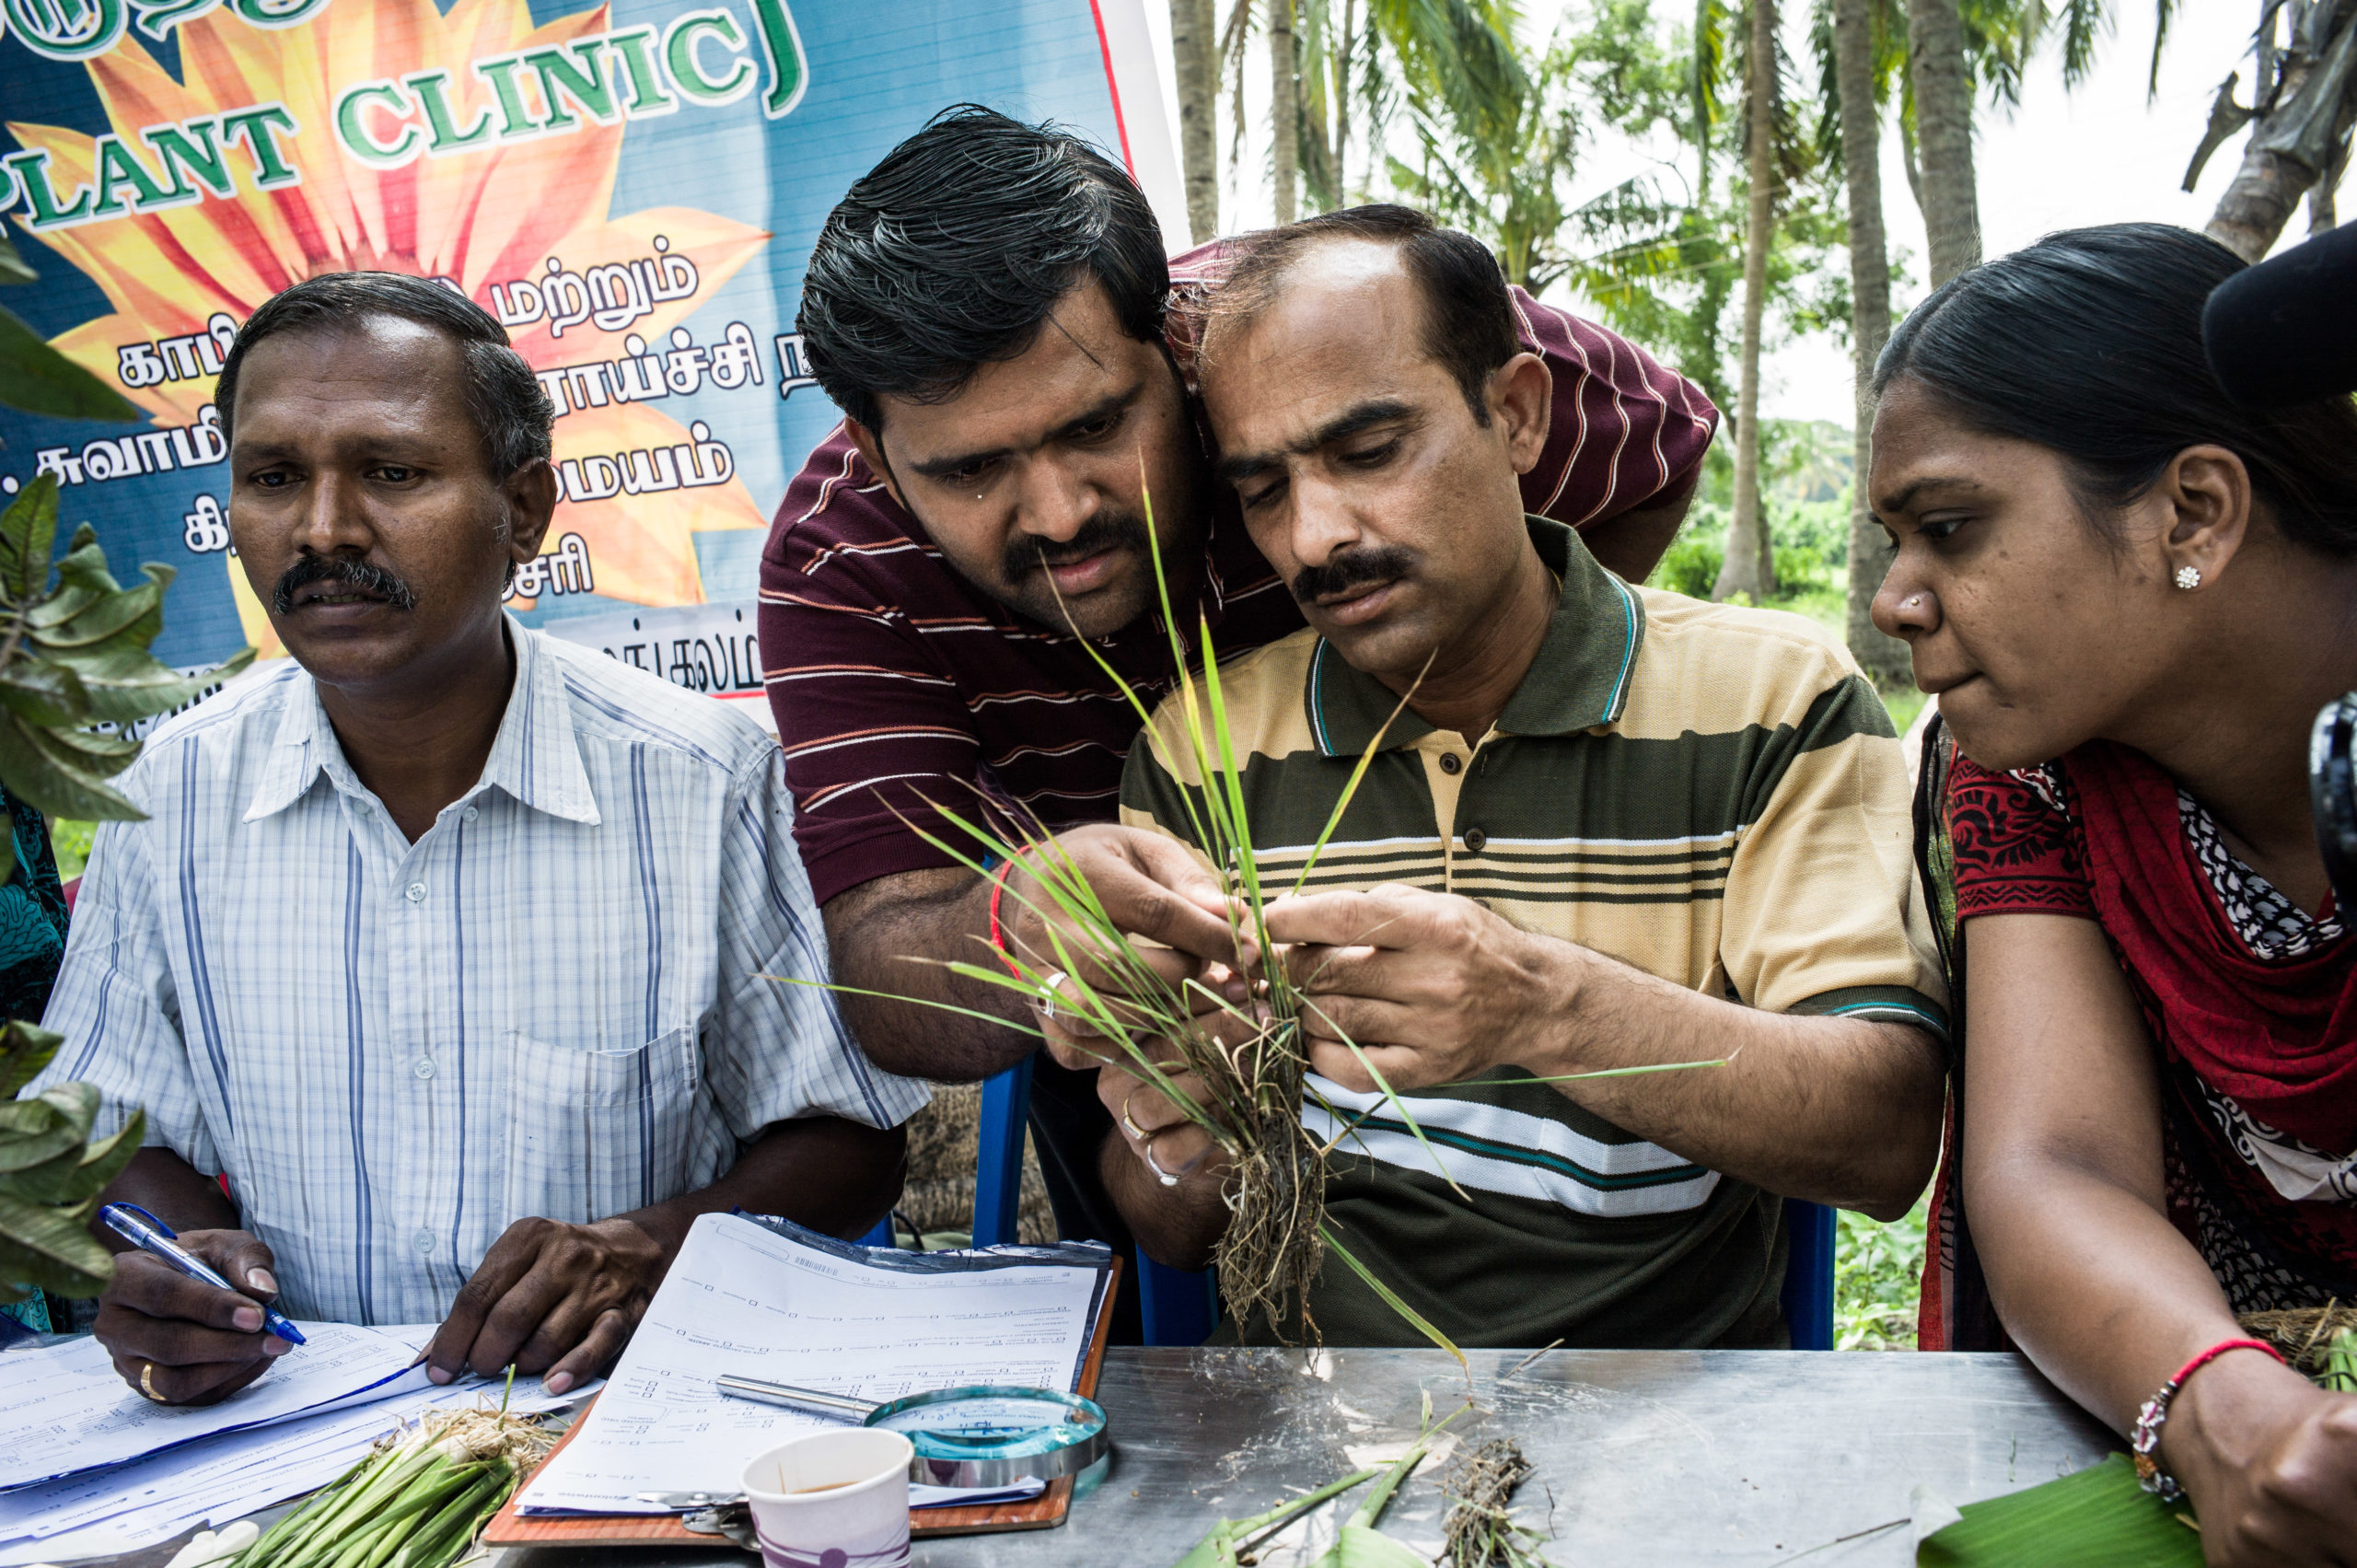 Plant clinic in India